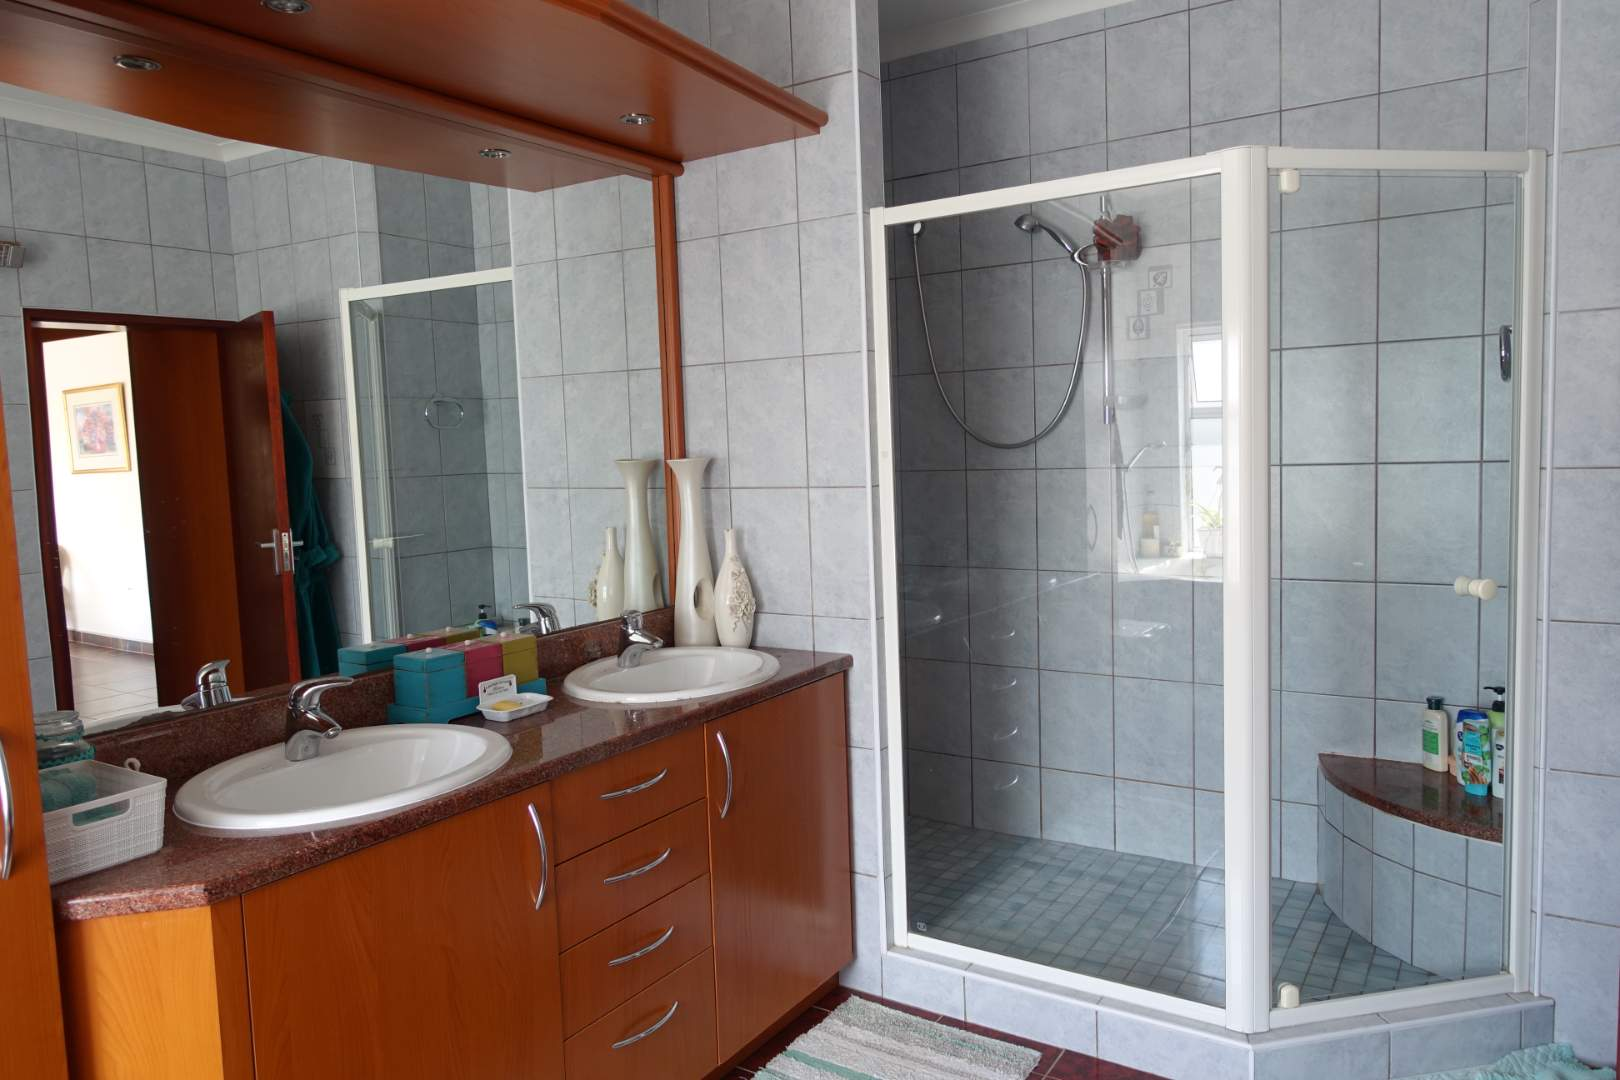 Main bathroom with shower, bath tub and separate toilet